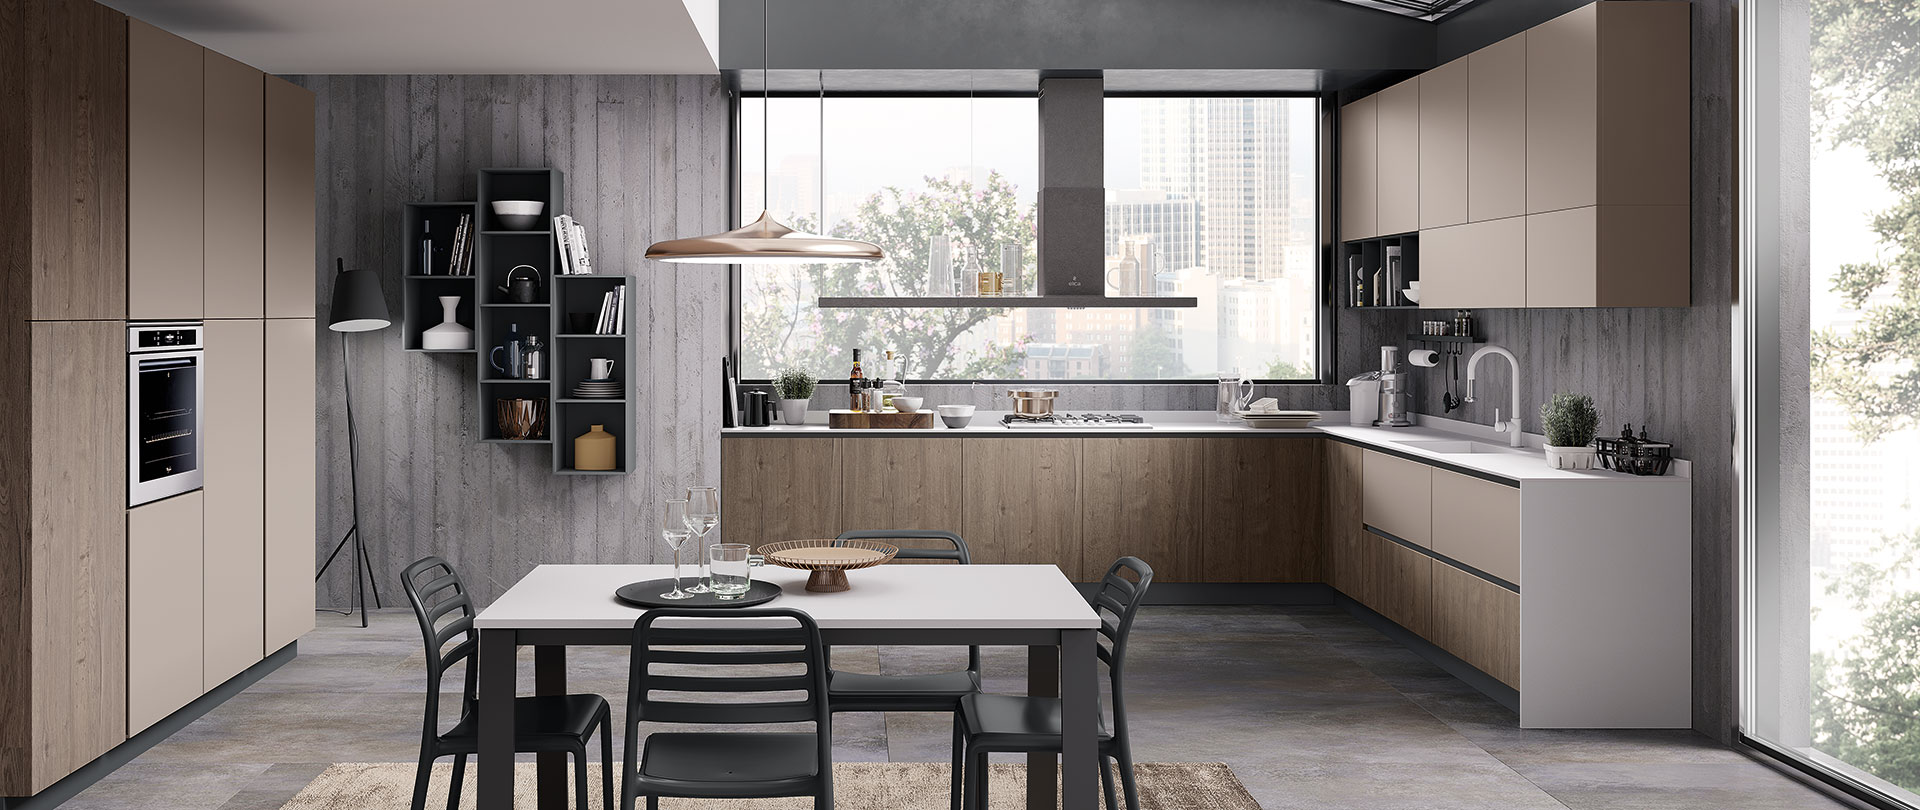 """<span  class=""""uc_style_uc_tiles_grid_image_elementor_uc_items_attribute_title"""" style=""""color:#ffffff;"""">07_cucina_ergonomica_hilary_rovere-tabacco_cipria</span>"""